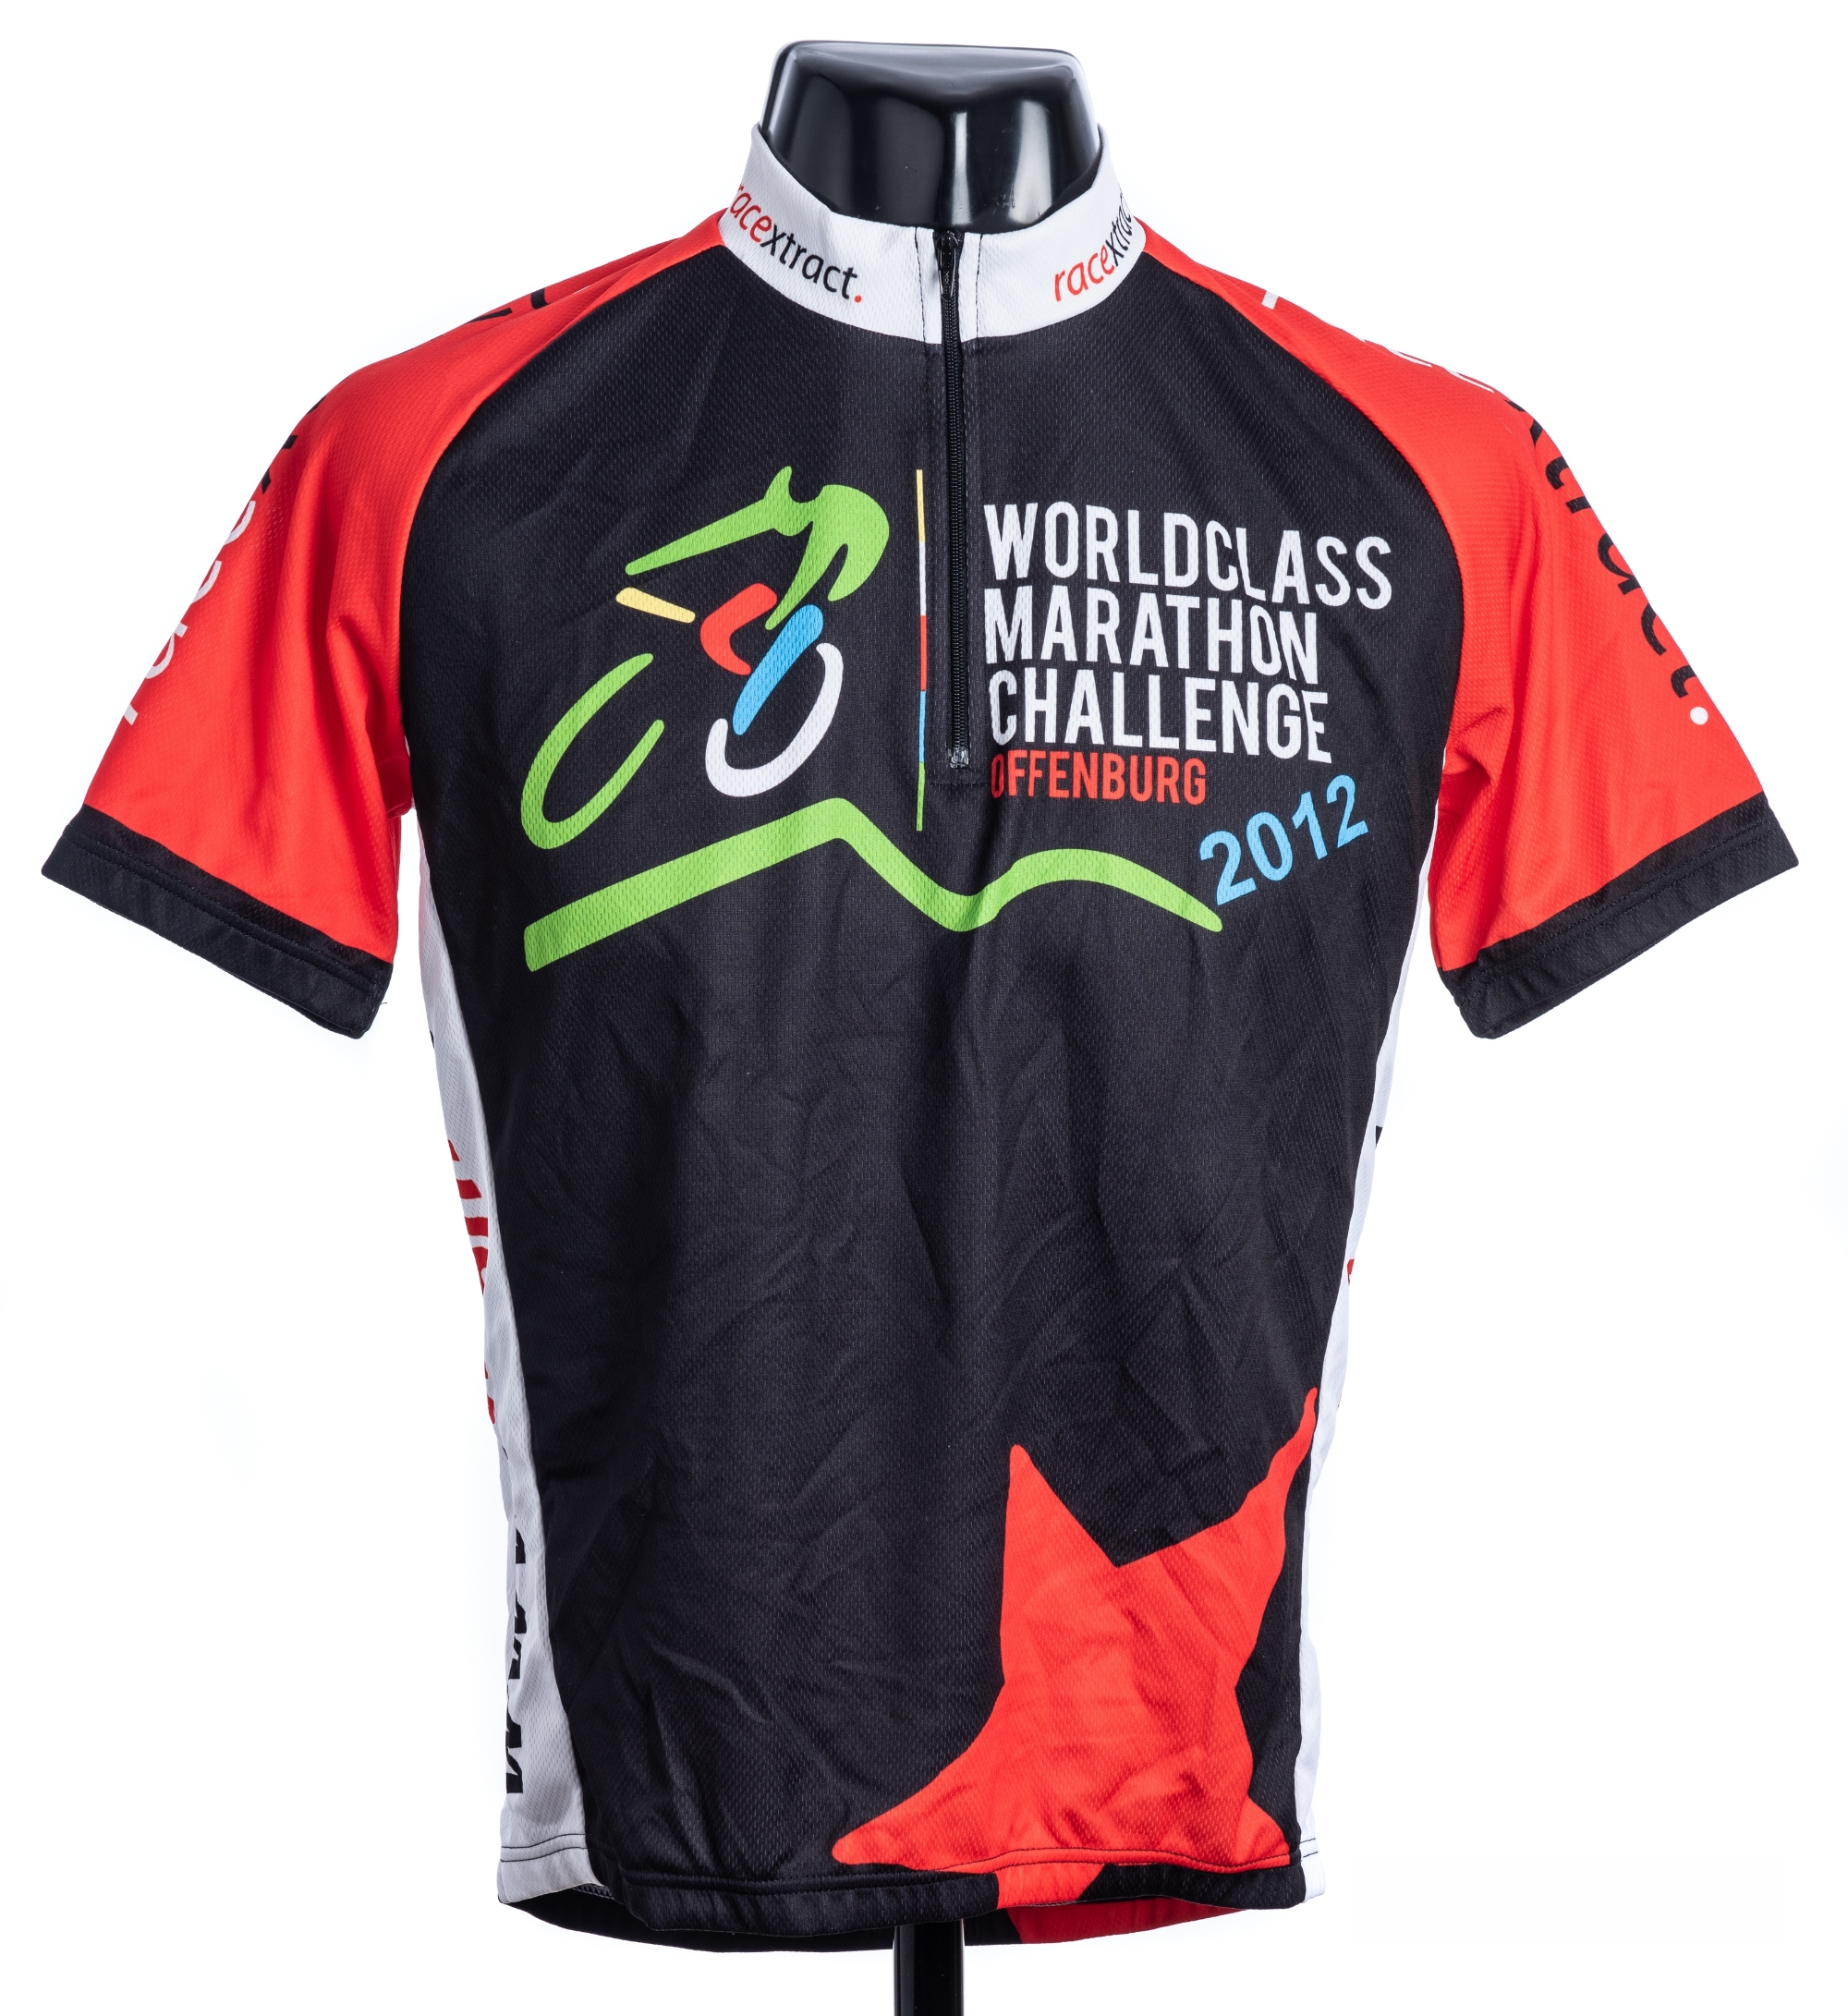 2012 black, red, white and green World Class Marathon Challenge Offenburg Race Xtract Cycling race - Image 3 of 4